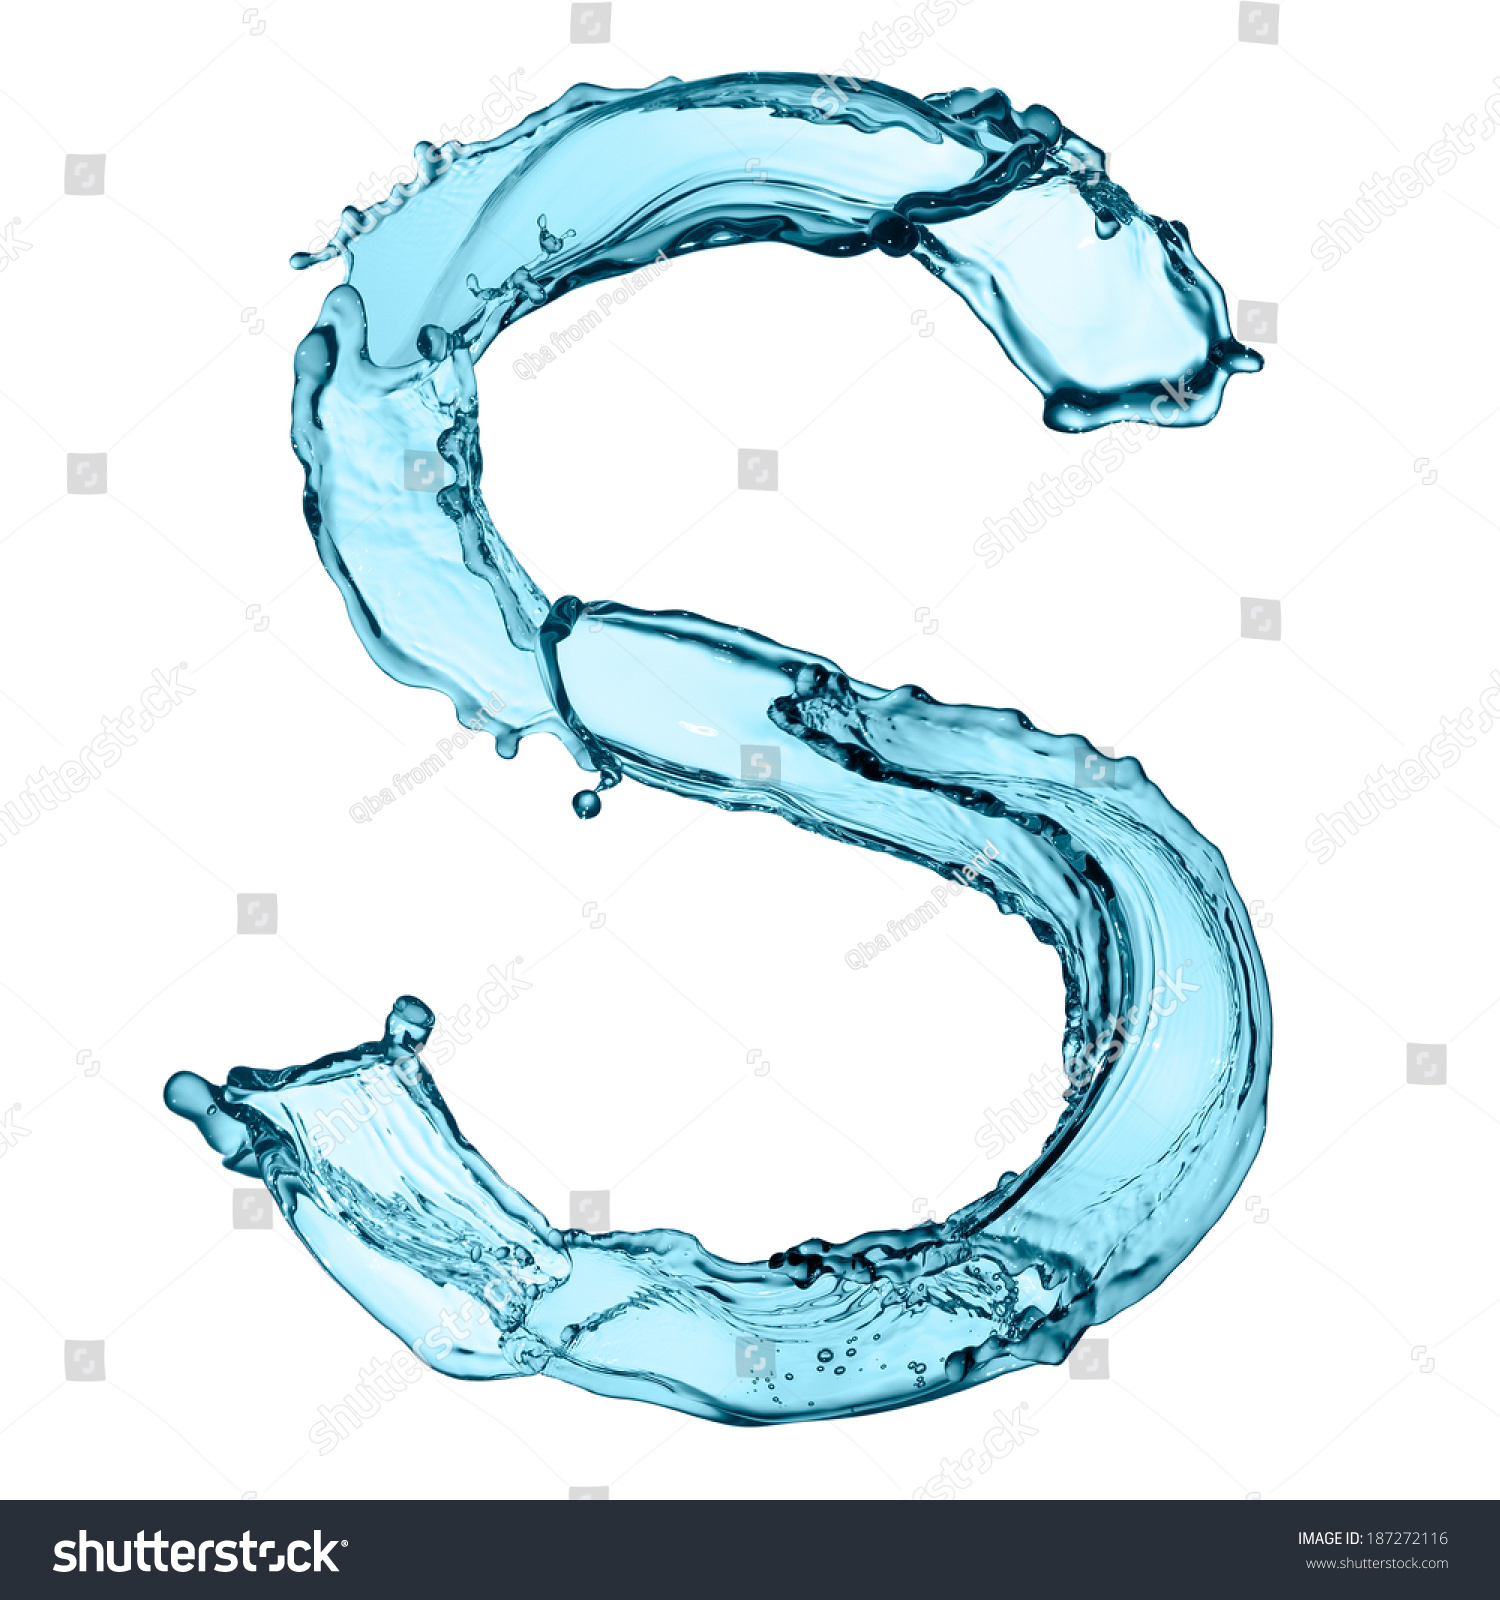 Capital Letter S capital letter s of water alphabet isolated on white ...